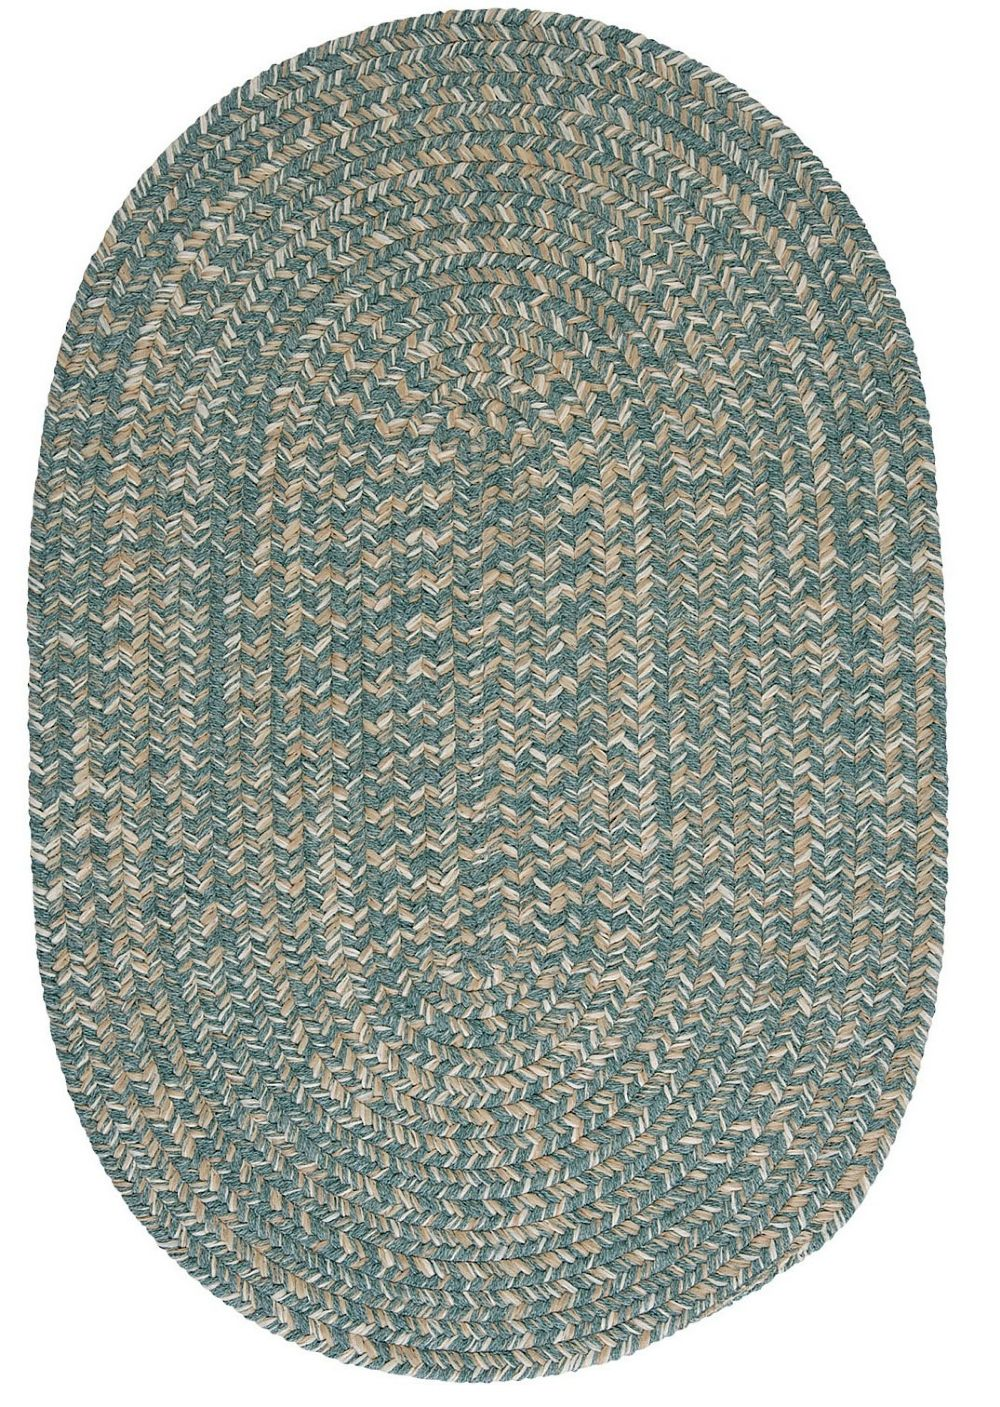 colonial mills tremont braided area rug collection